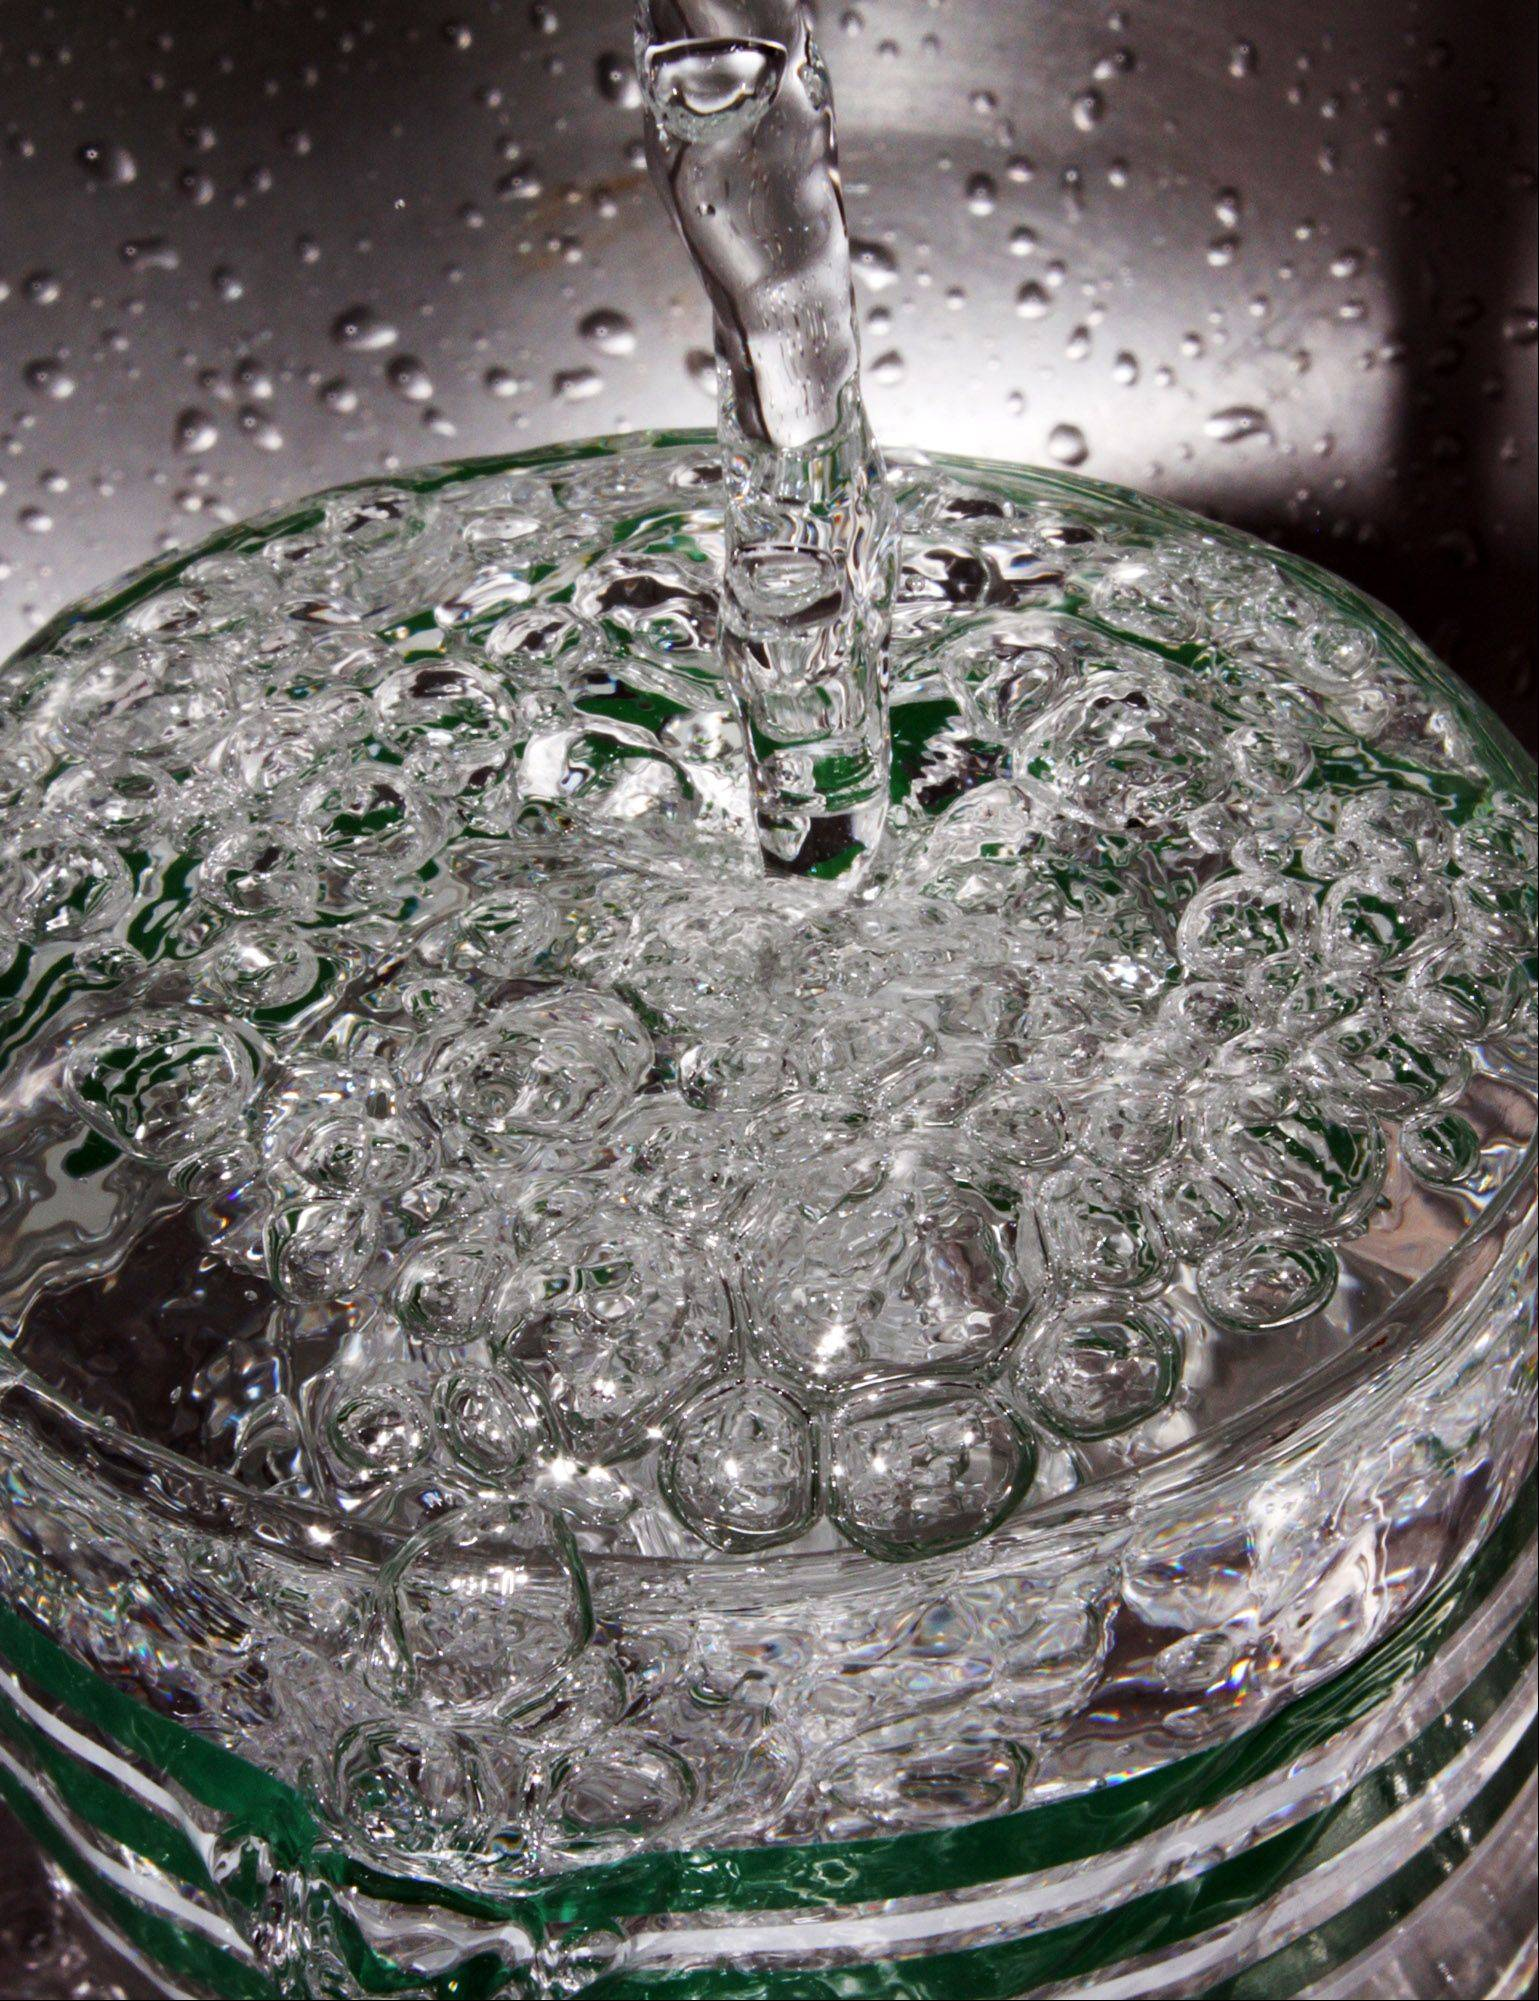 Bubbles erupt from a glass in a kitchen sink as water pours in.